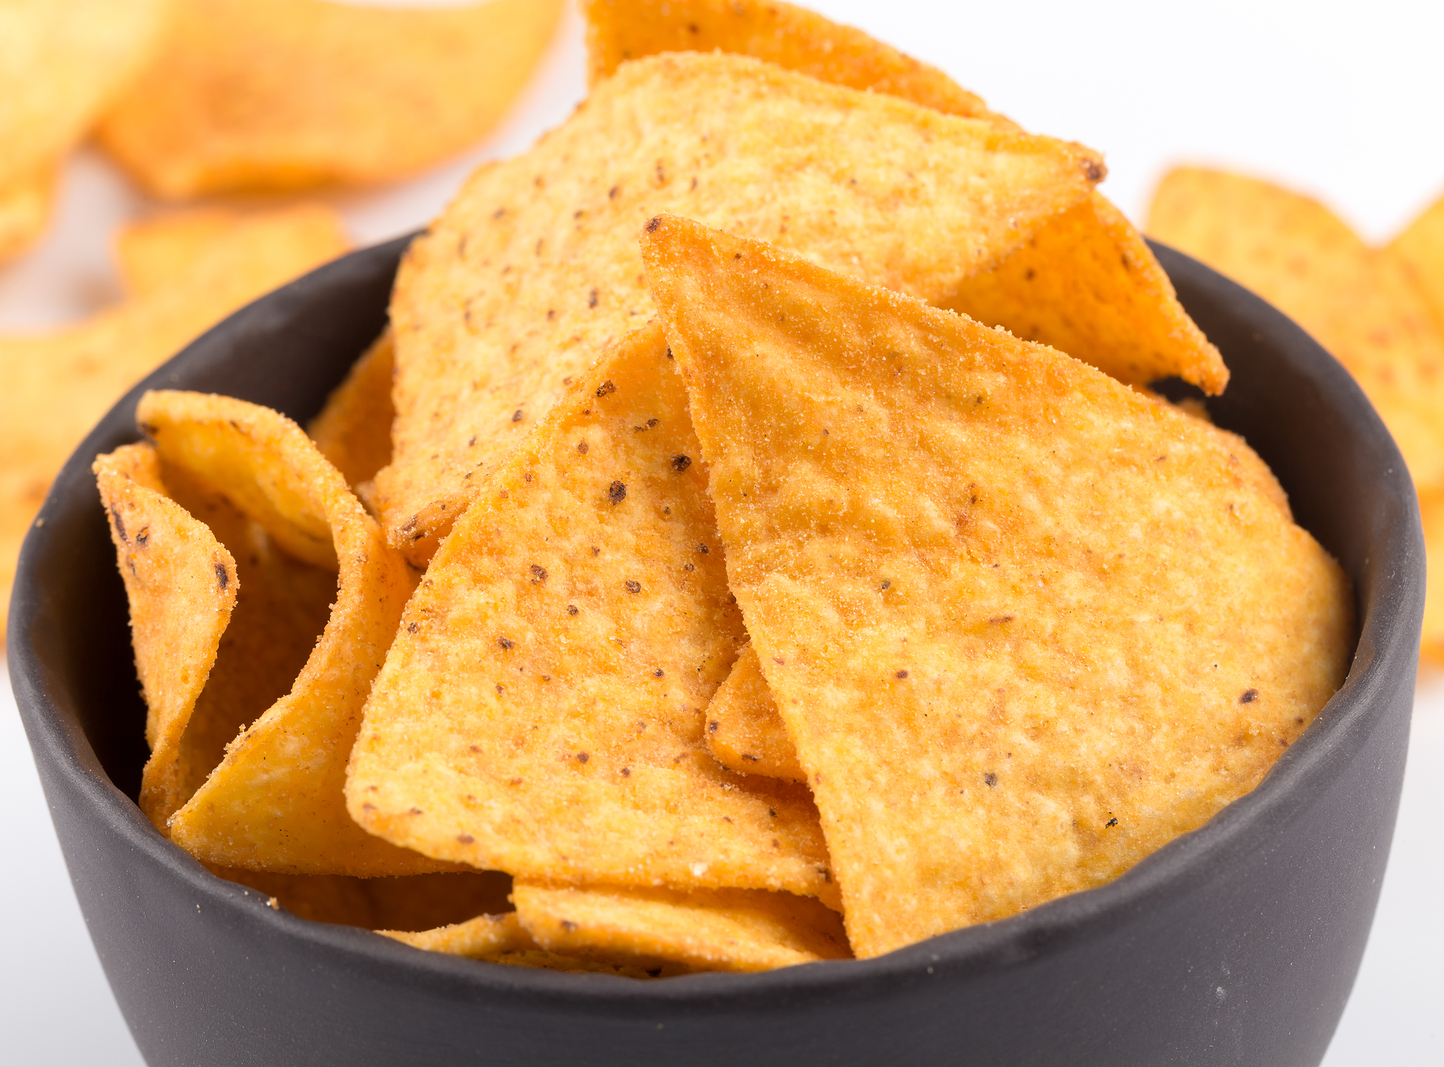 What are the Black Spots on Corn Chips?